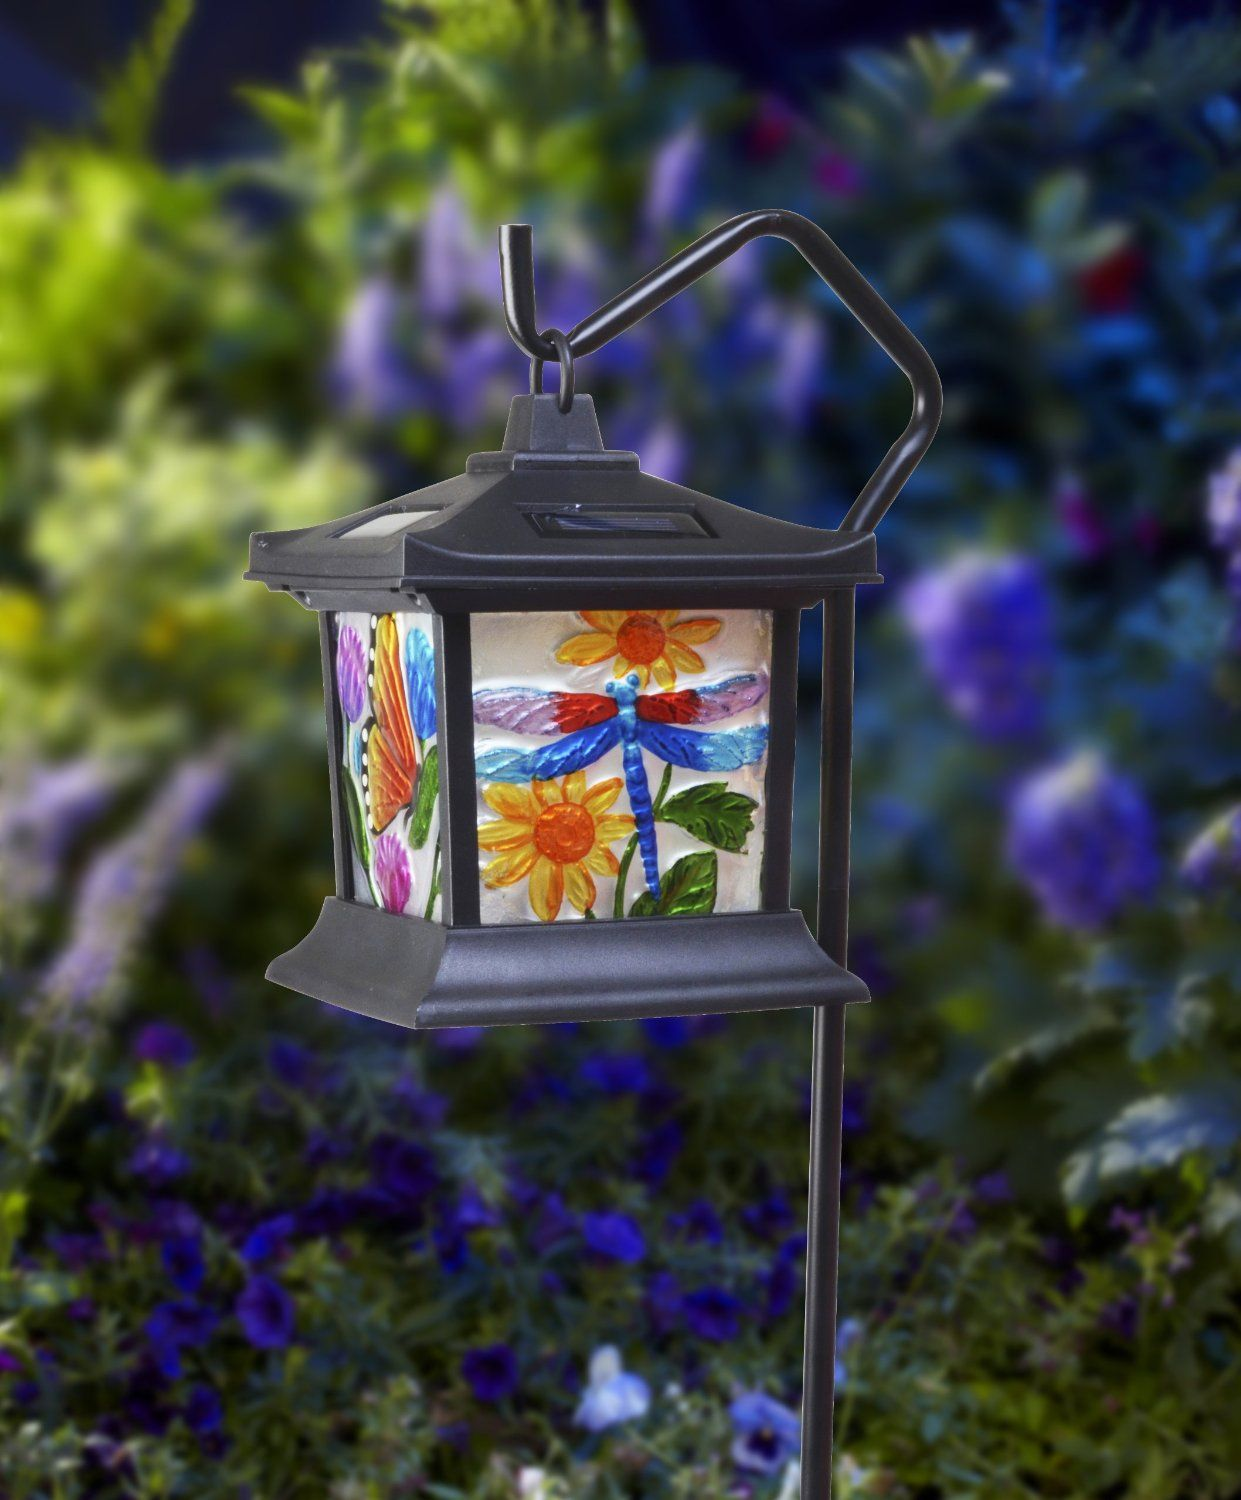 Charming Moonrays 92276 Solar Powered Hanging Floral Stained Glass LED Light      Amazon.com